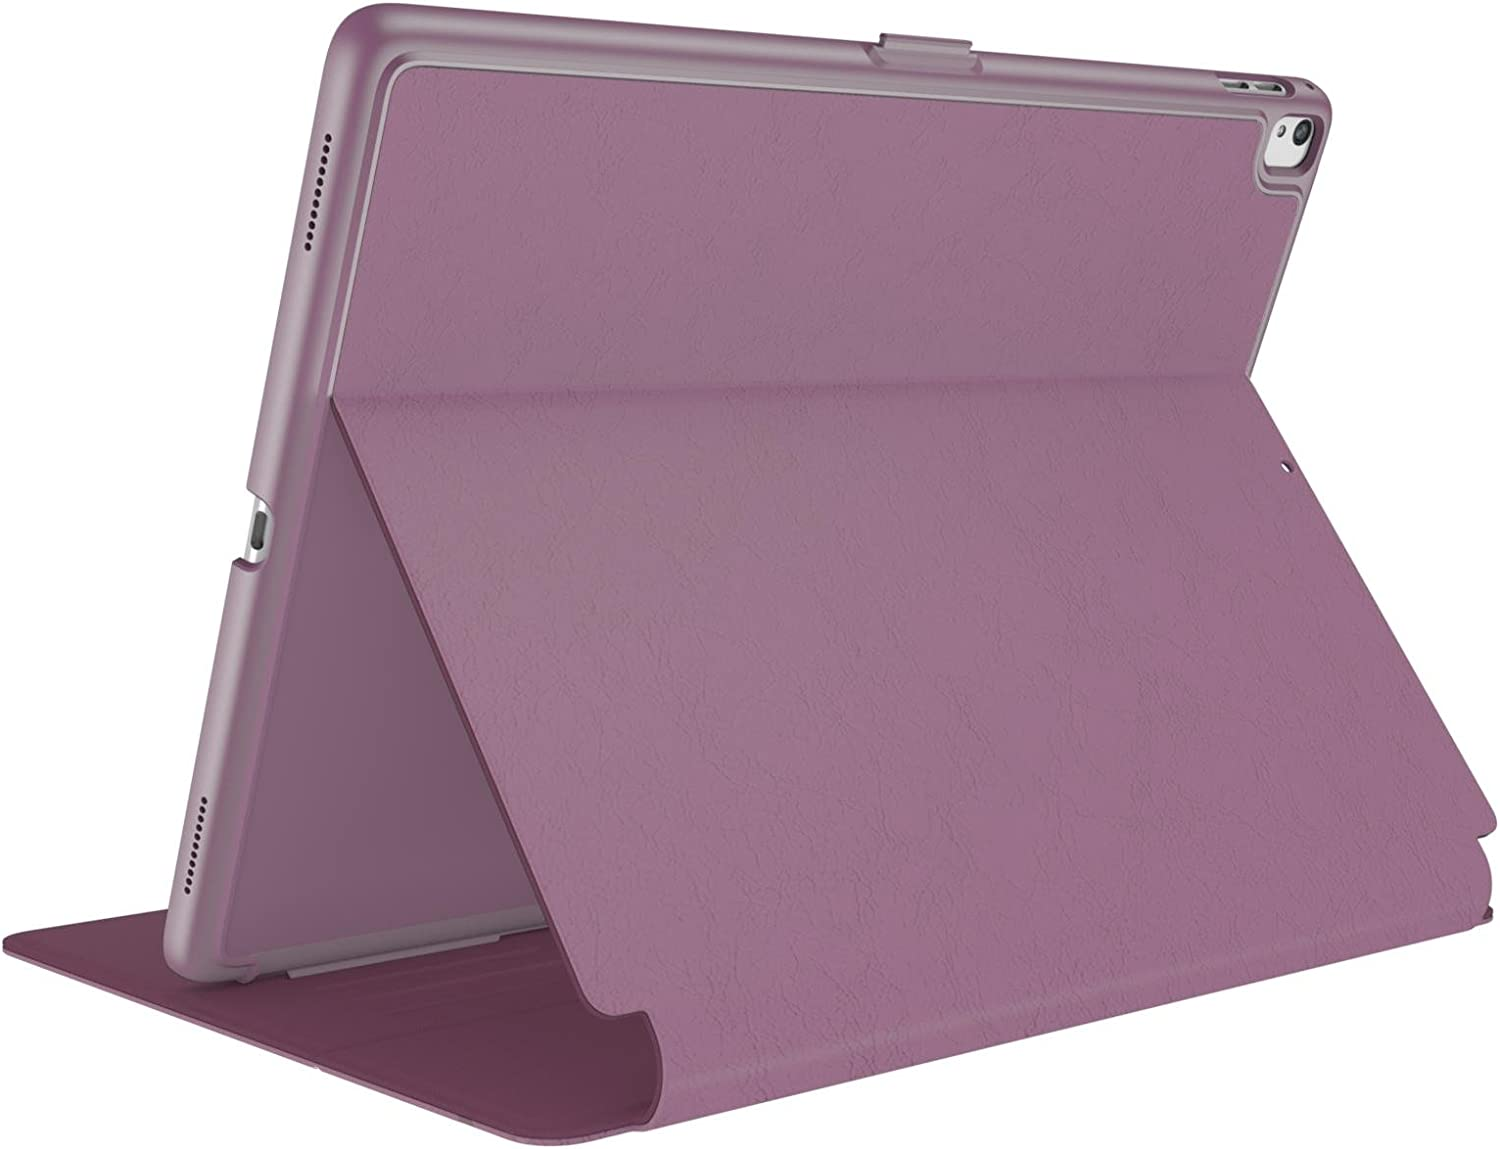 Speck Products BalanceFolio iPad Air (2019) Case (Also fits 10.5-inch iPad Pro), Plumberry Purple/Crushed Purple/Crepe Pink (128045-7265)